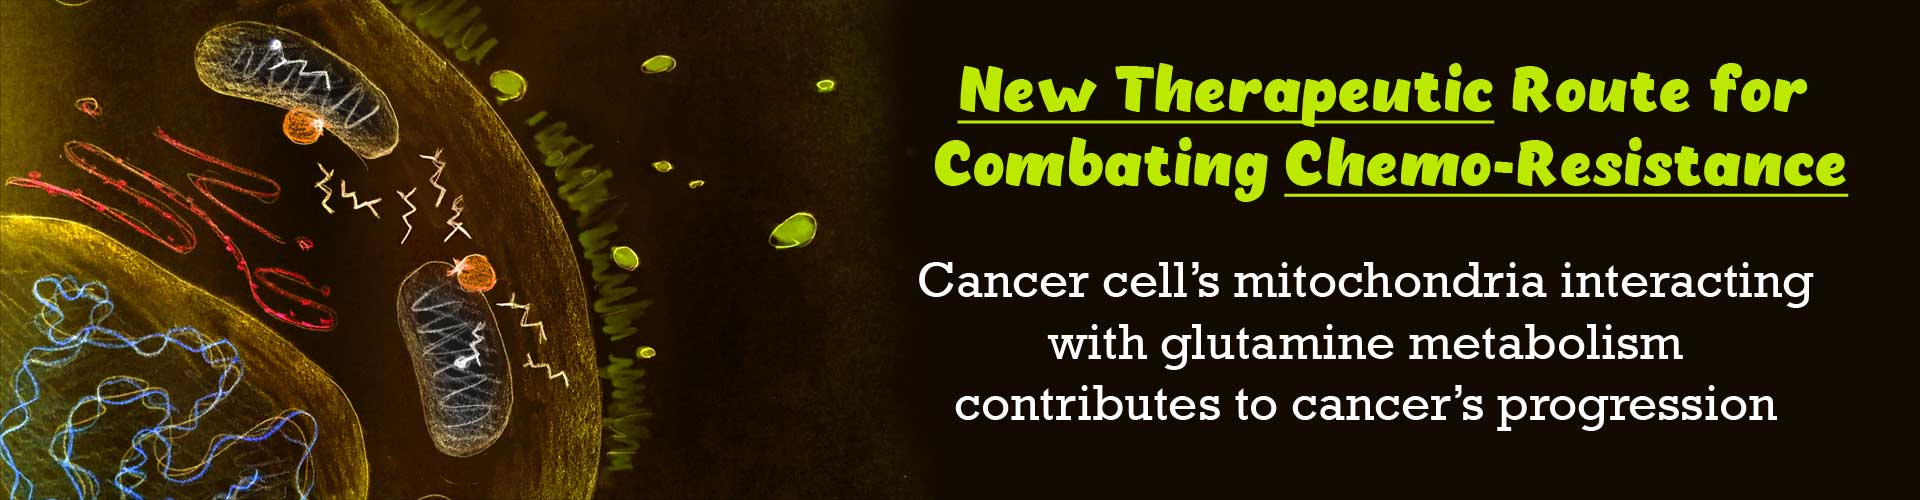 Disrupting Glutamine Metabolism Aids to Treat Chemotherapy Resistant Pancreatic Cancer